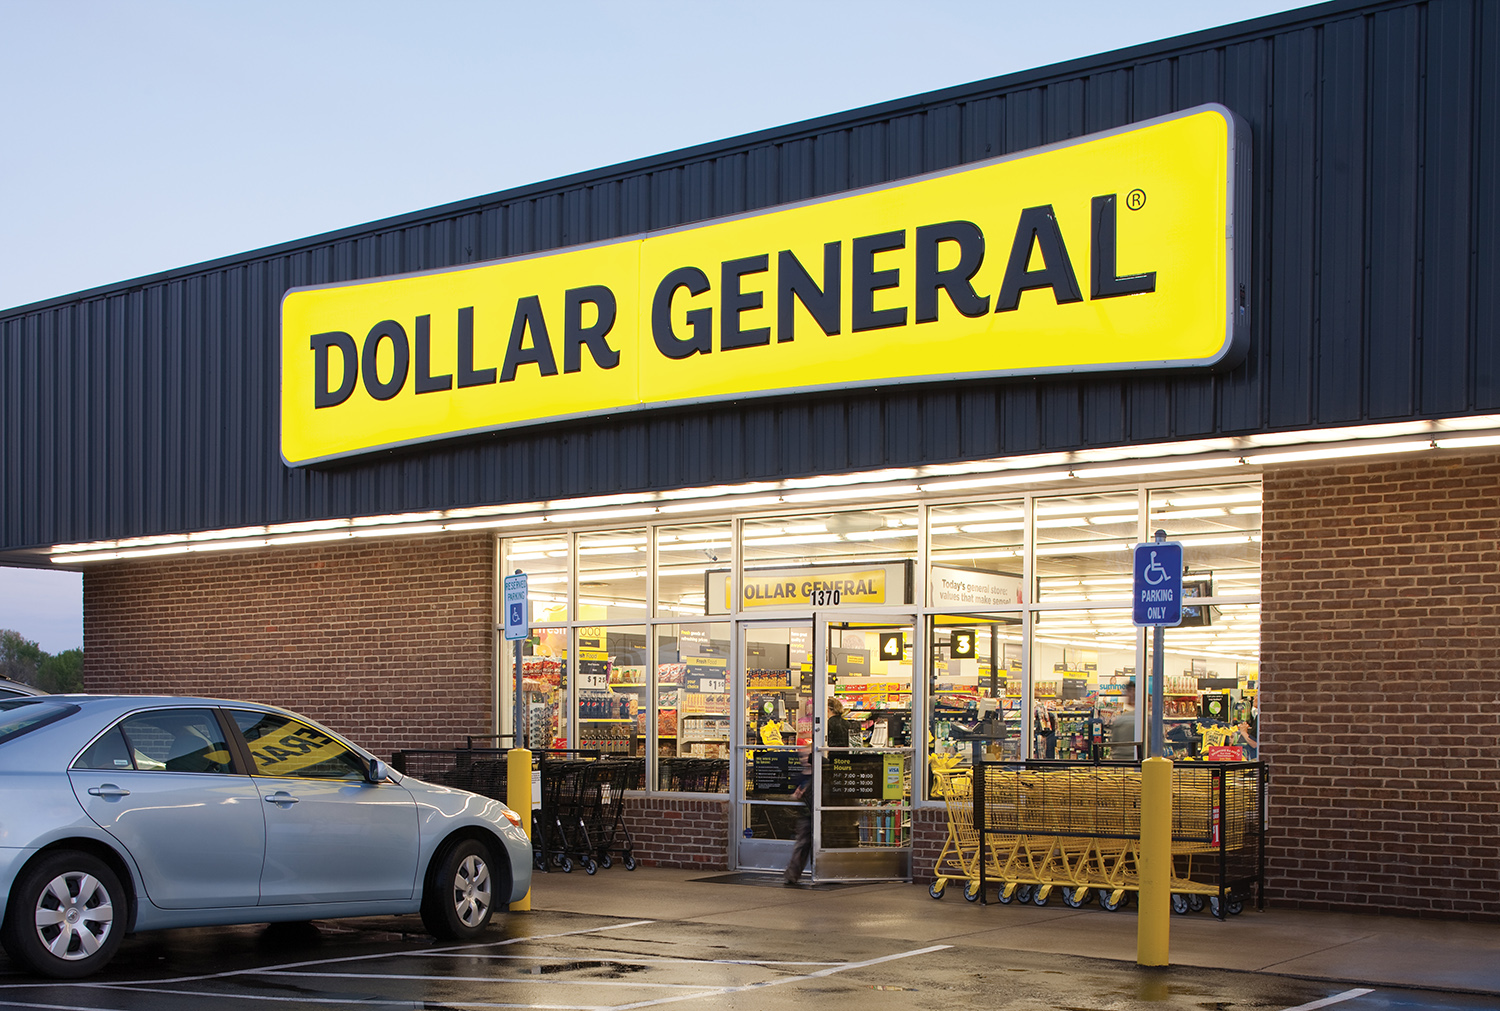 Hanley Investment Group Arranges Sale of Two, Brand New Construction Dollar General Properties in Ohio for $3.1 Million